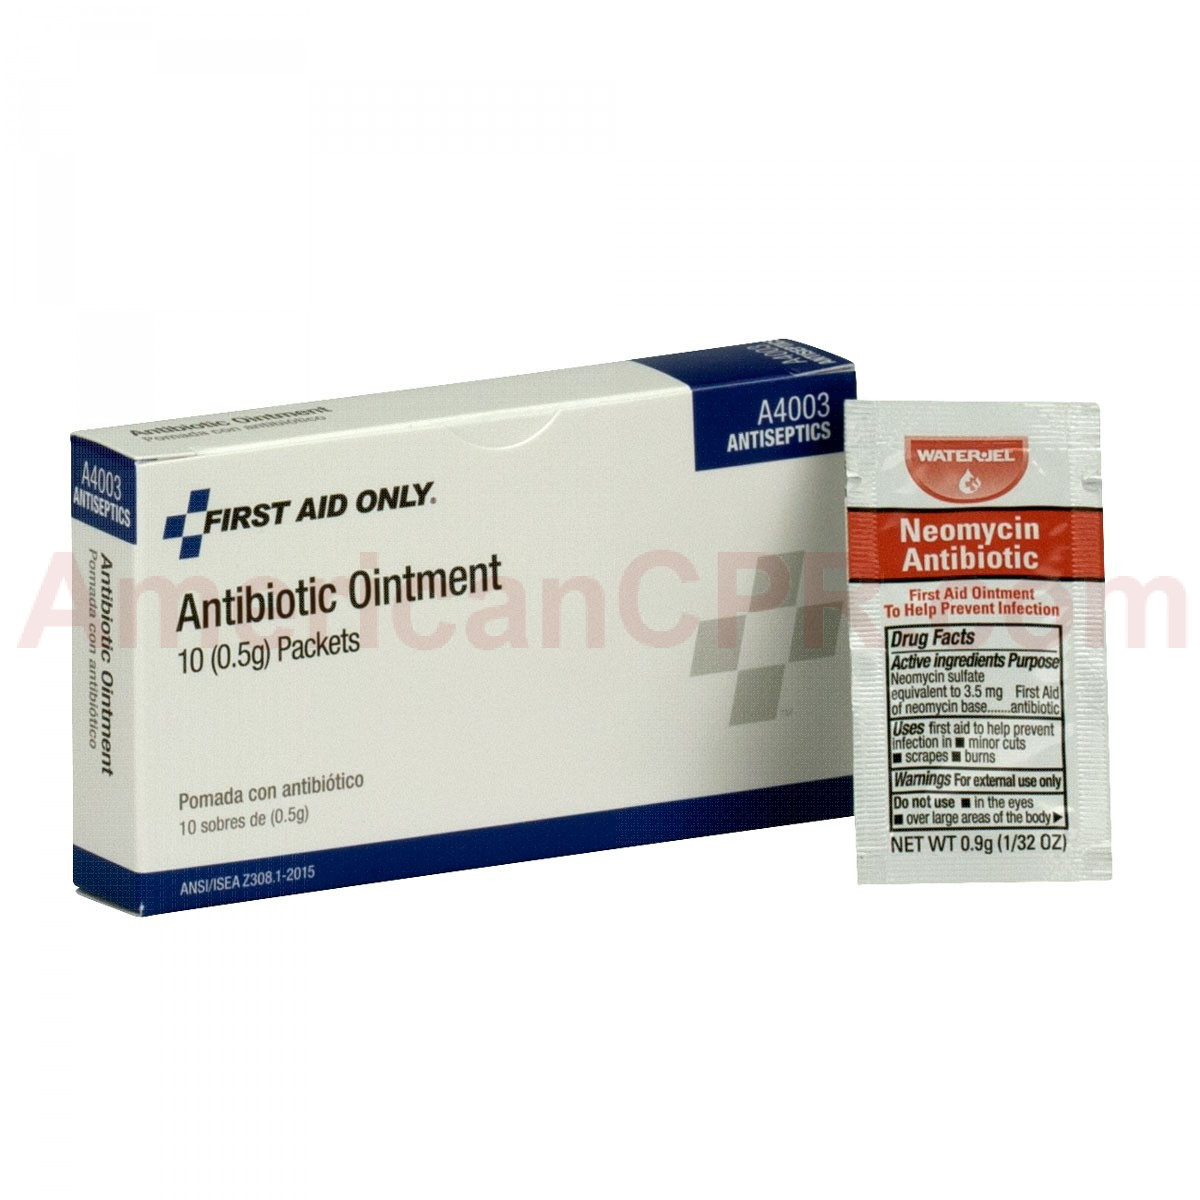 Neomycin antibiotic 10 packet box with first aid ointment packet beside the box